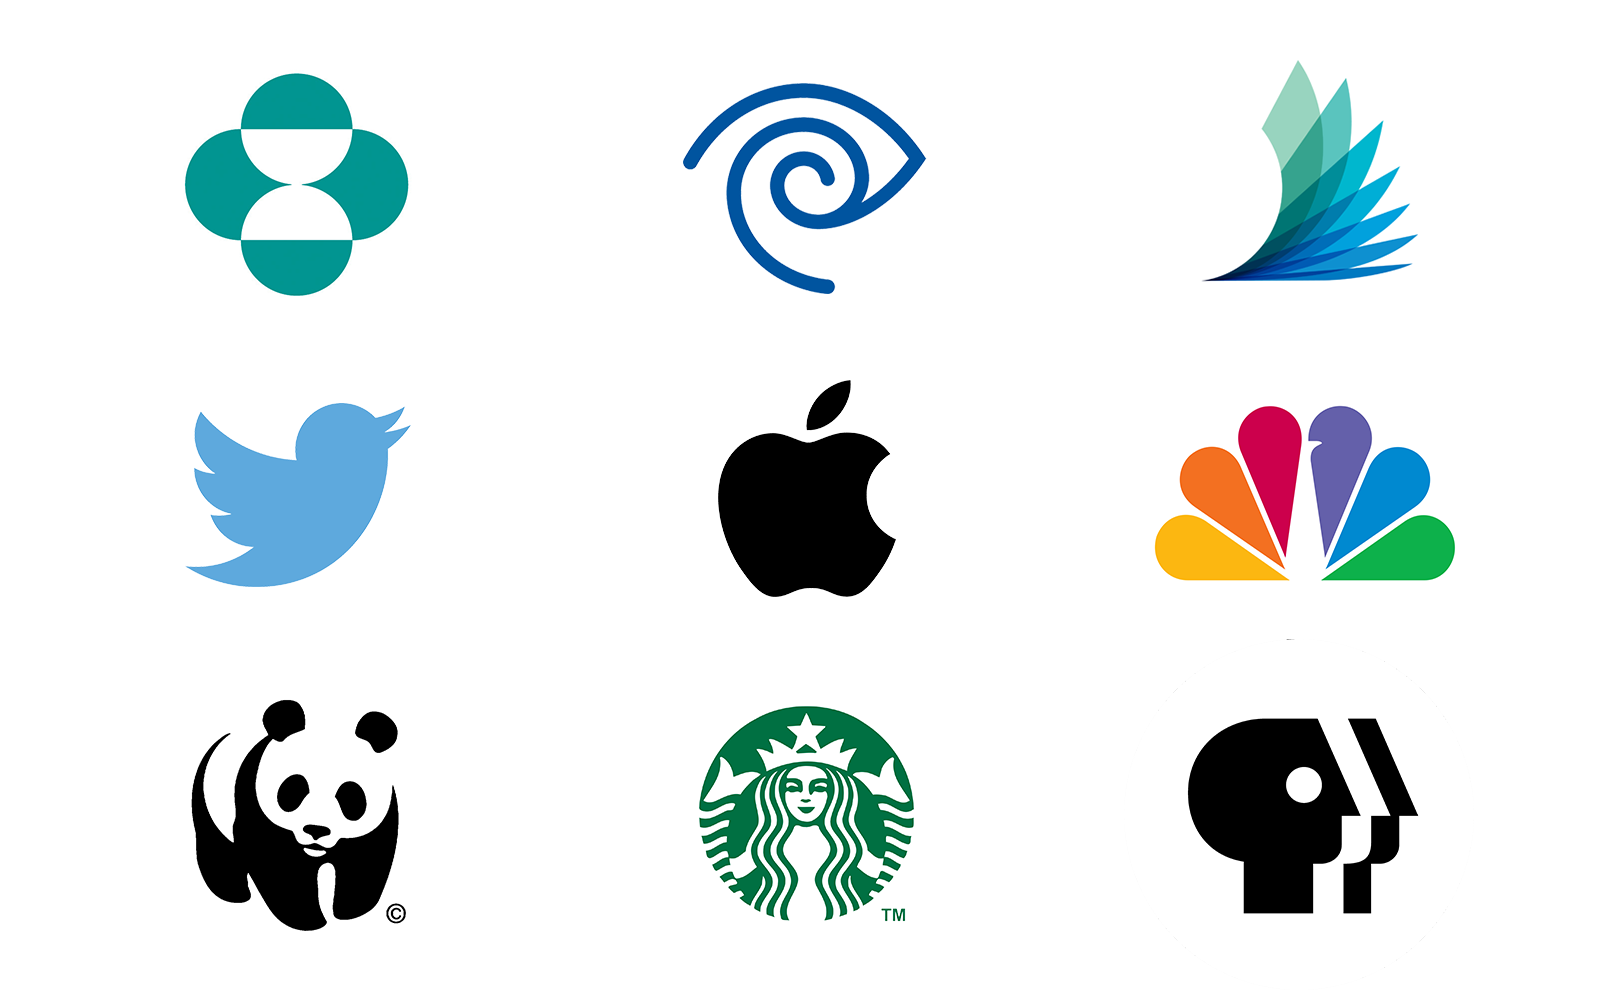 5 logo types pictorial marks